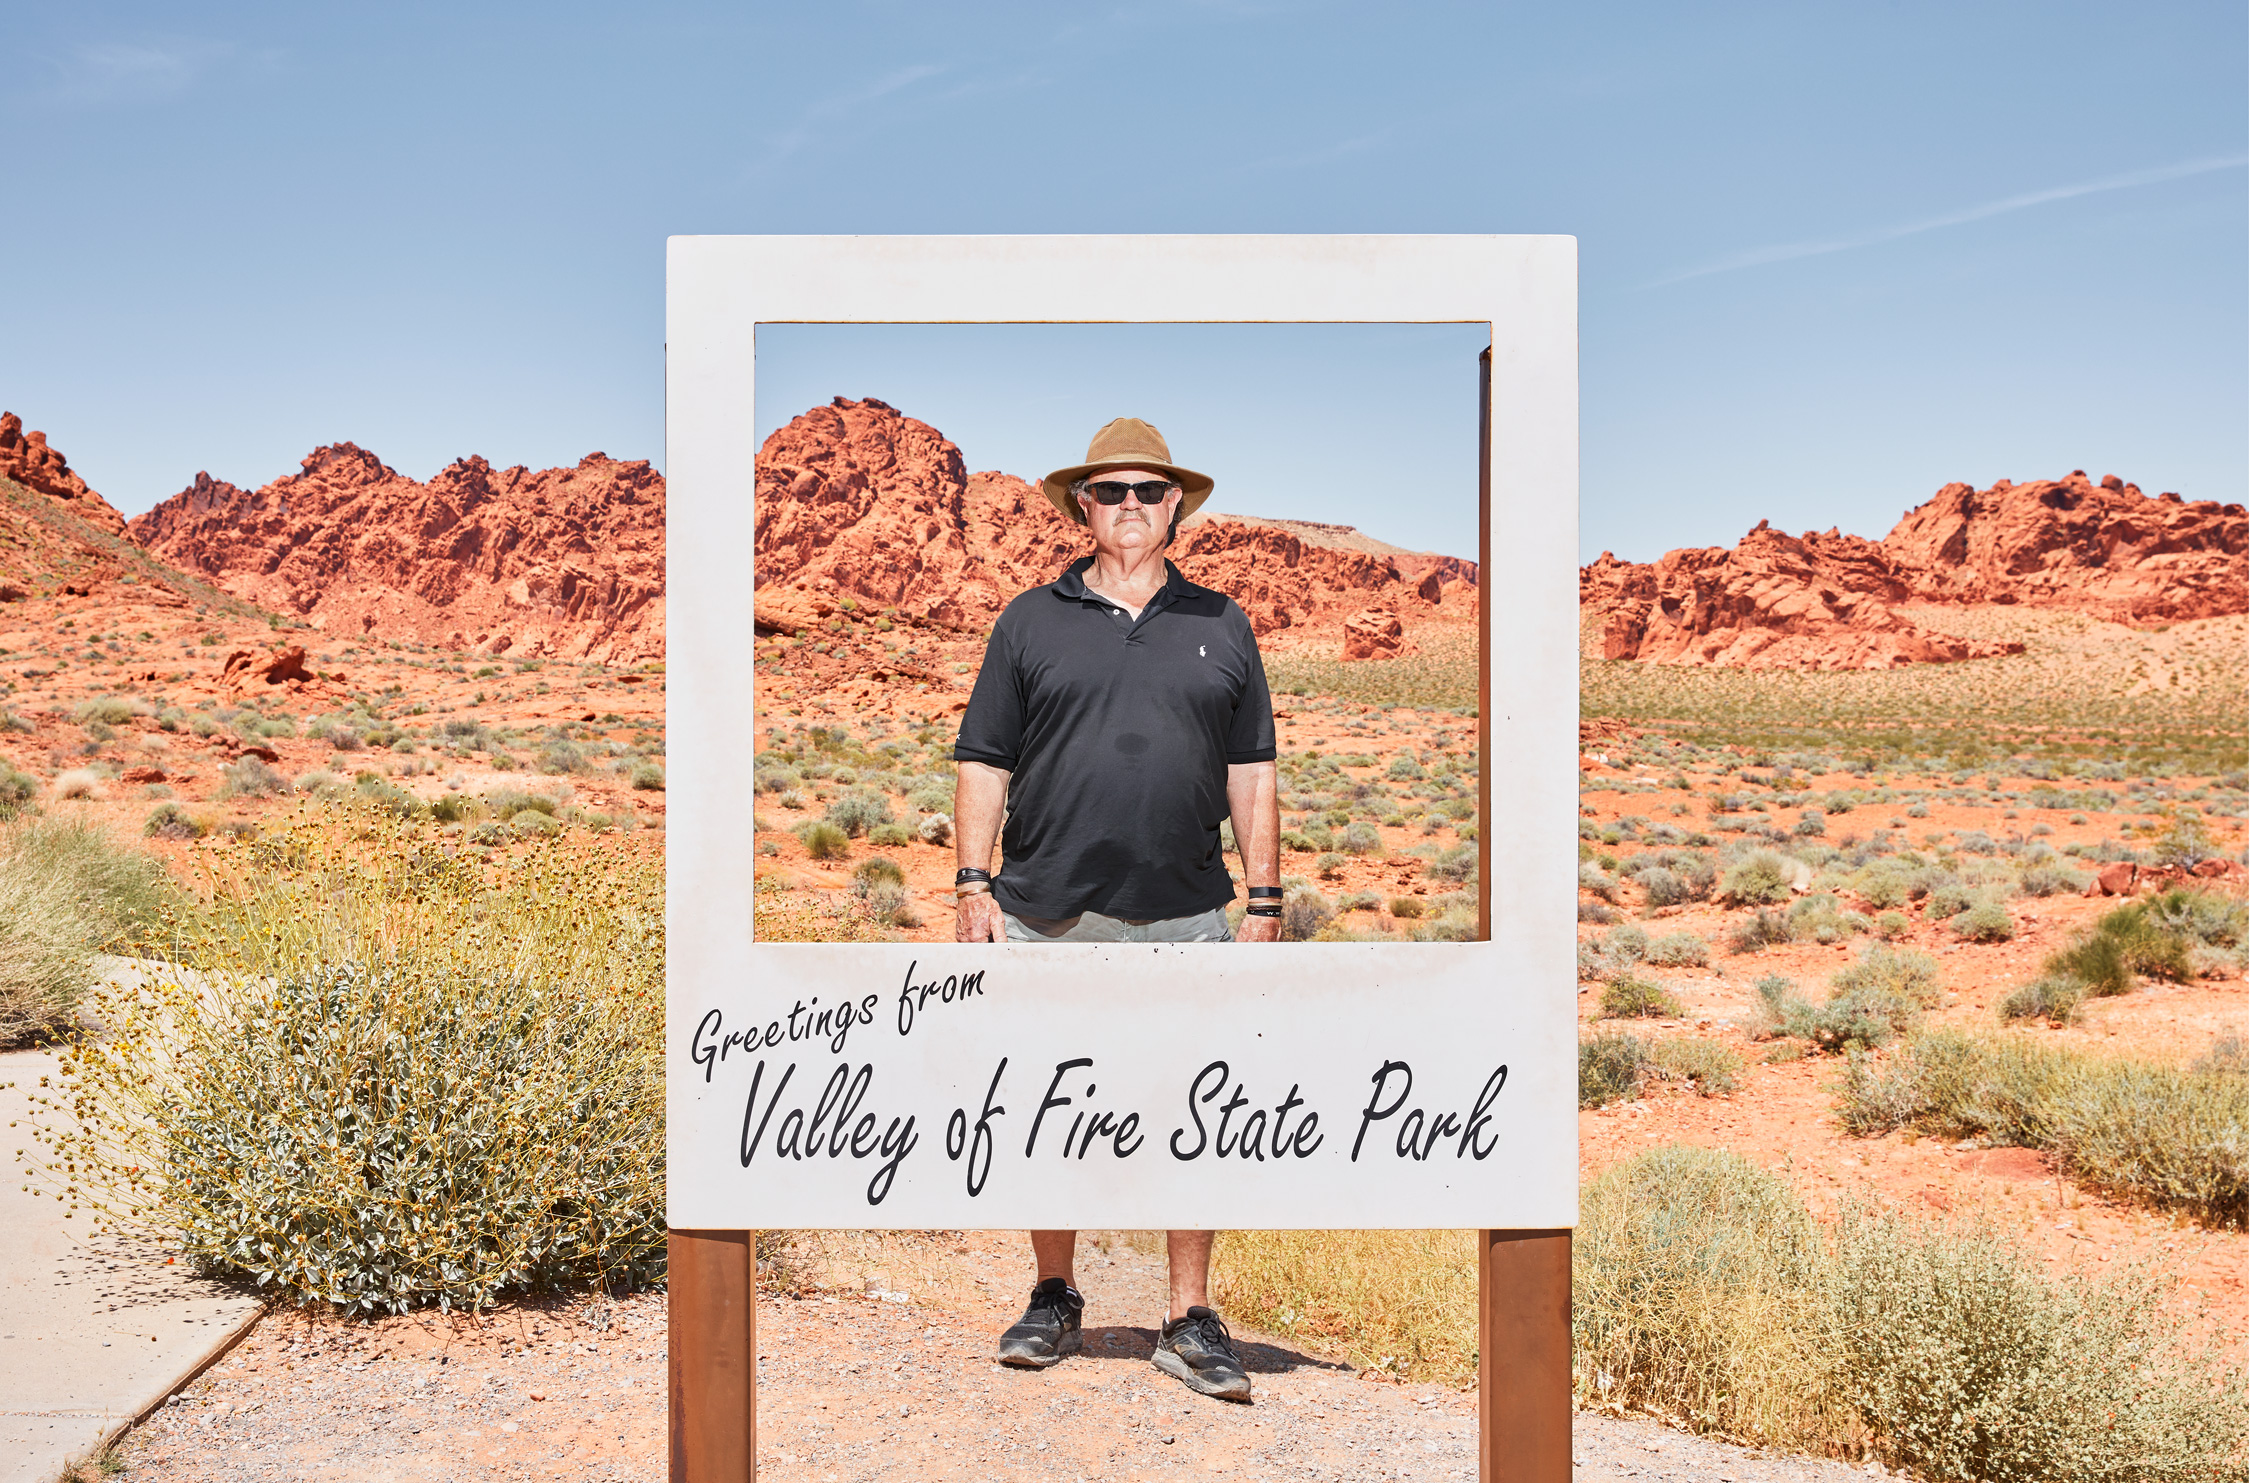 Dad Hits The Road - Valley of Fire State Park, NV - Stephen Denton Photography -  Los Angeles, CA / Phoenix, AZ Commercial Photographer